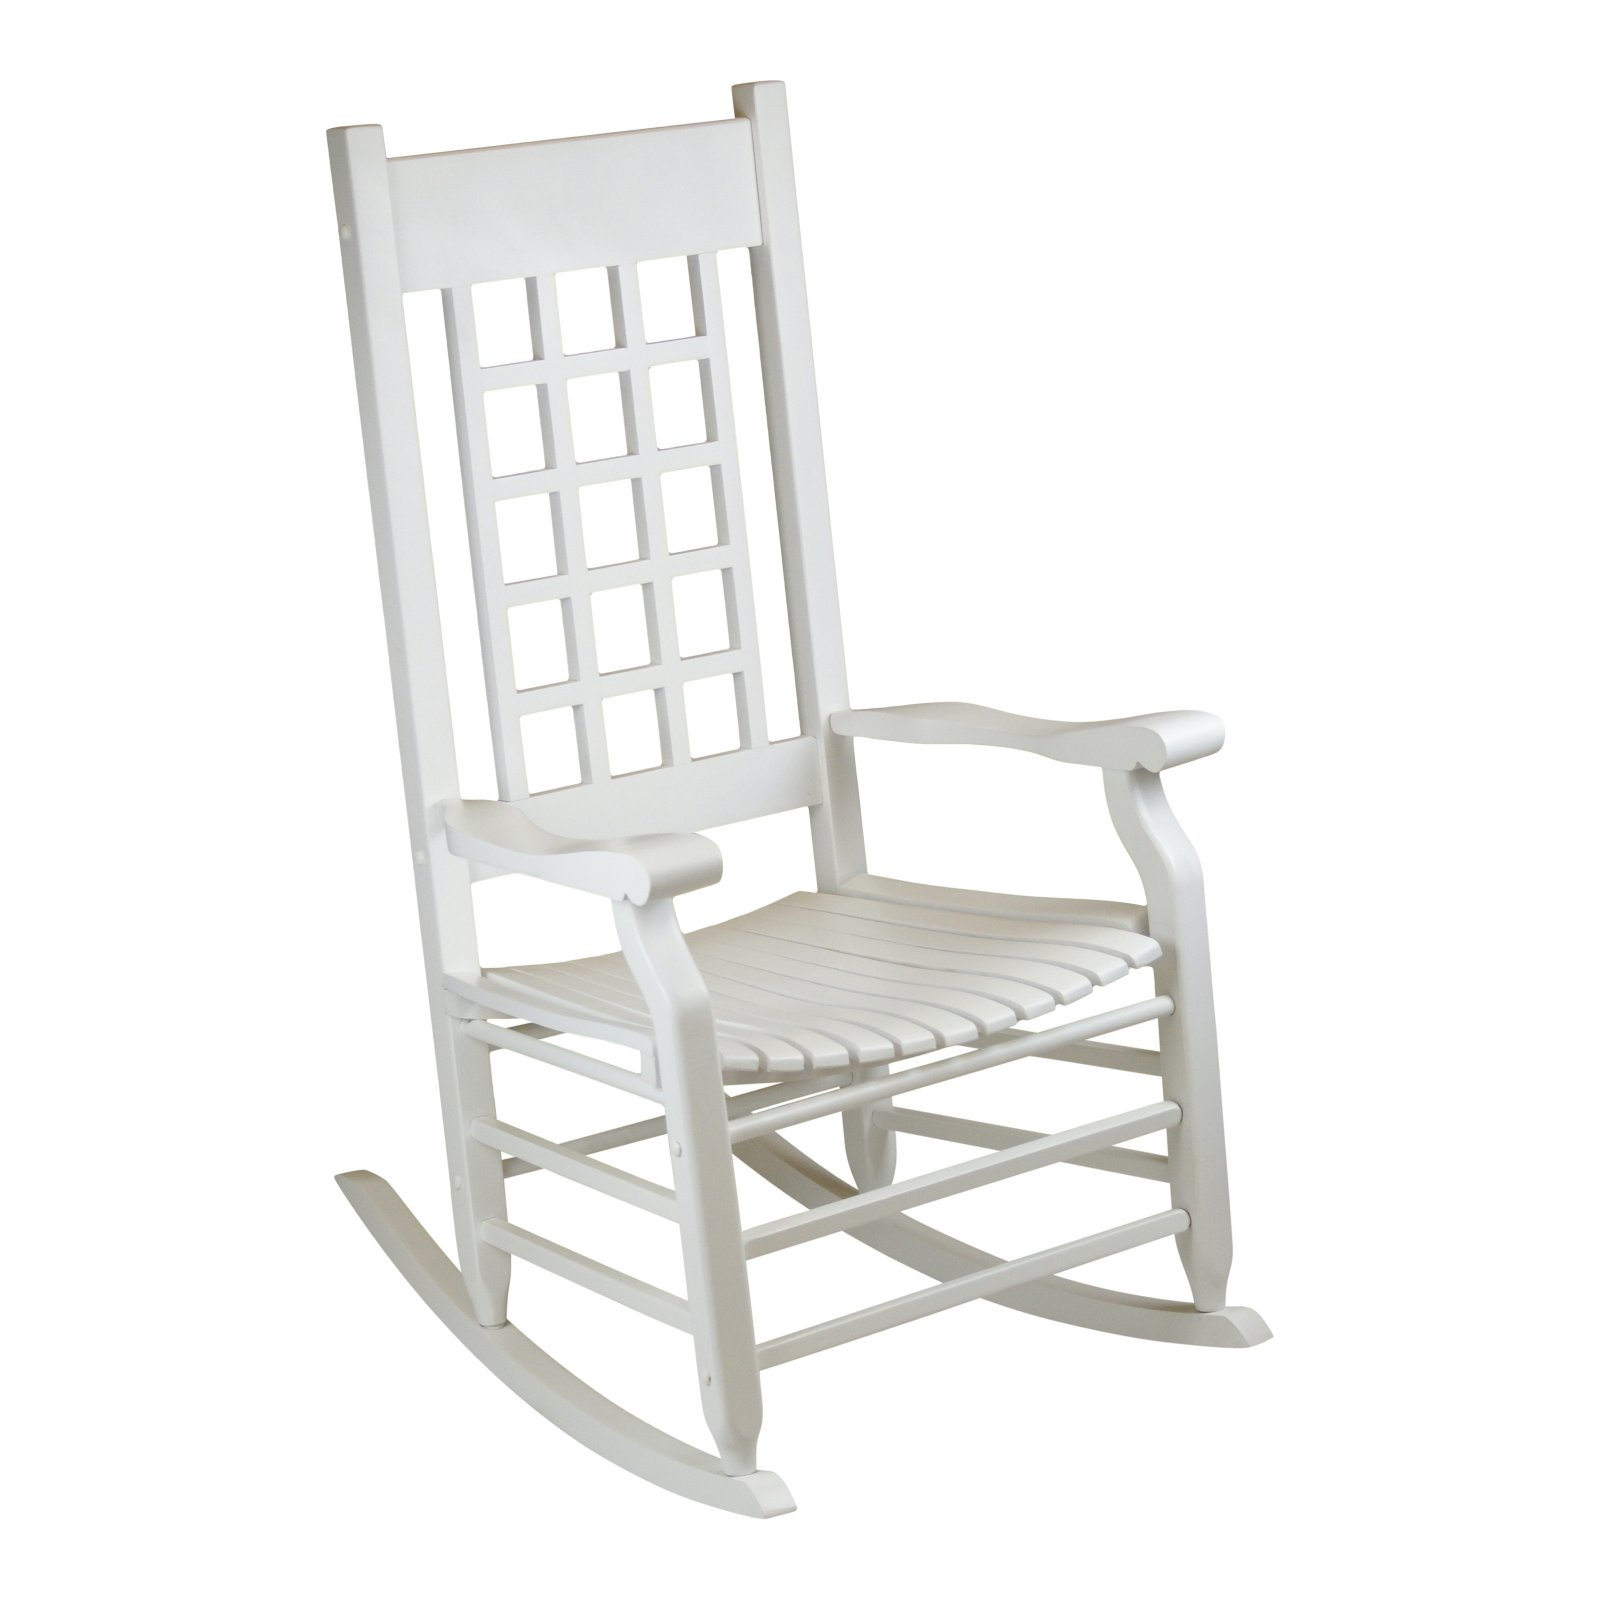 Marvelous Outdoor Hinkle Brookfield 1900 Lattice Back Wood Patio Andrewgaddart Wooden Chair Designs For Living Room Andrewgaddartcom